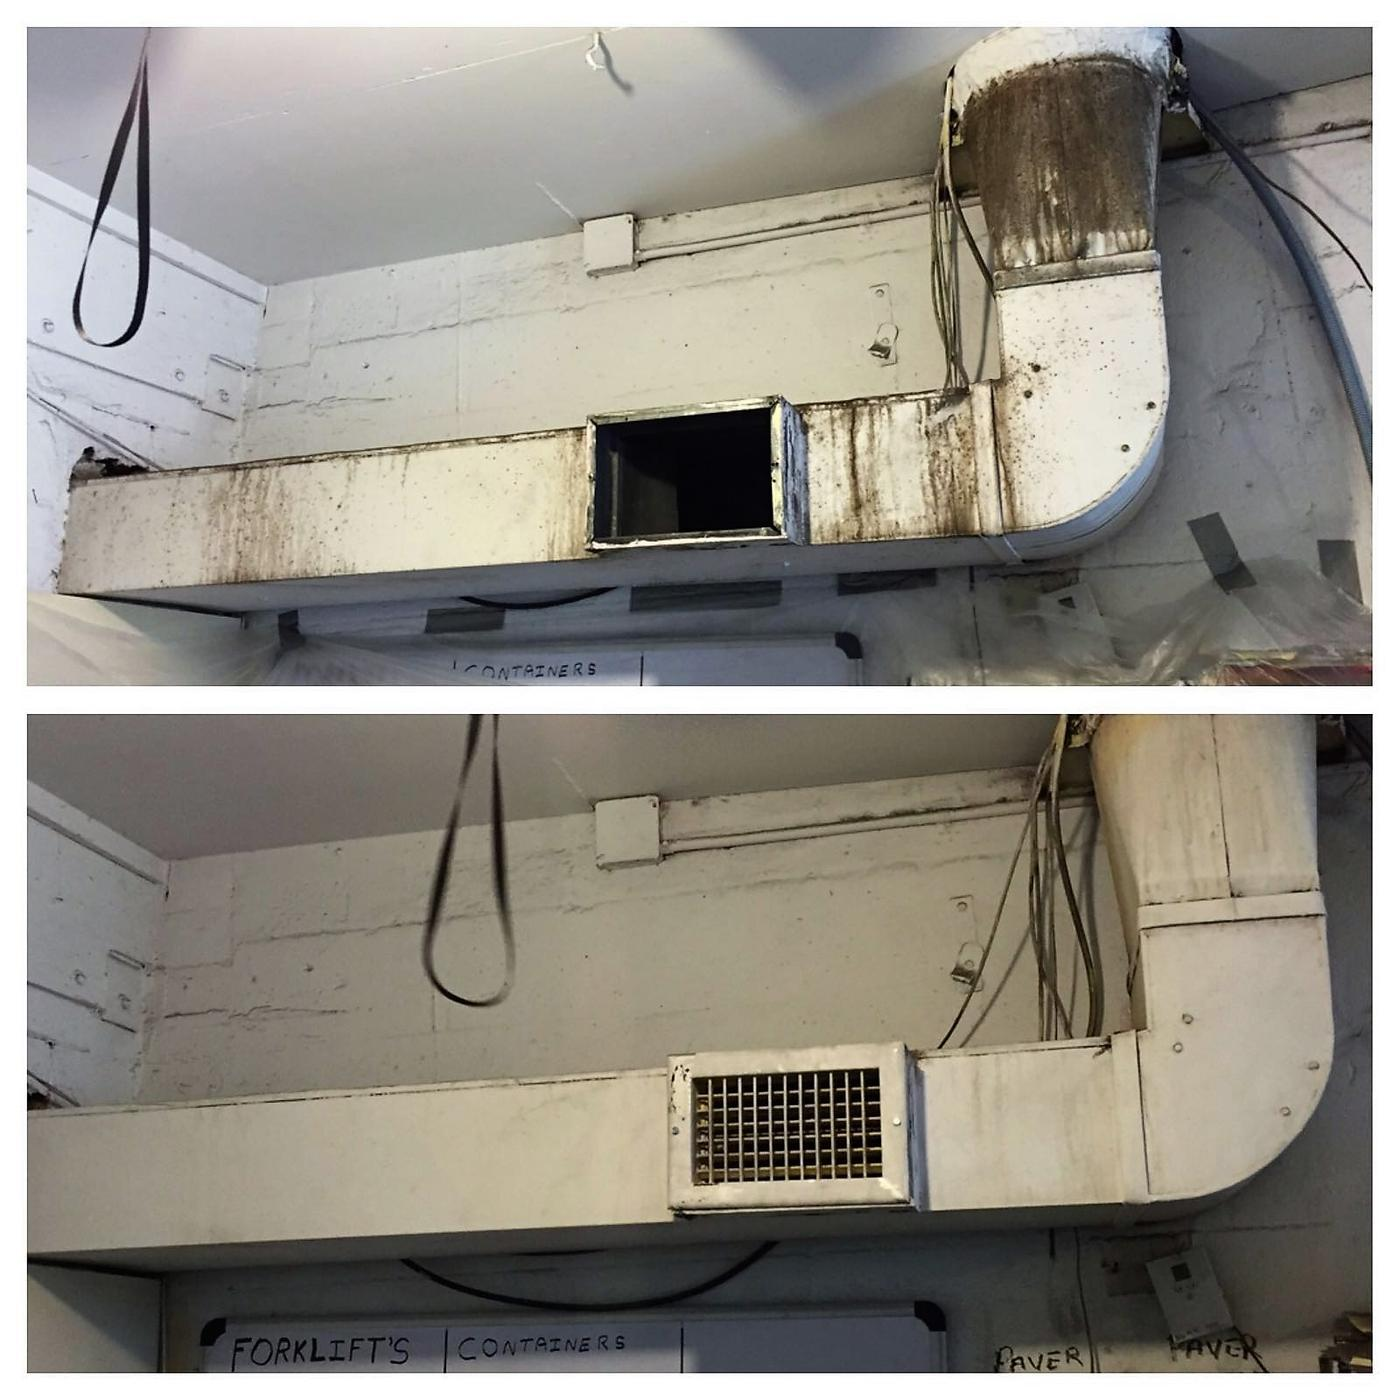 mold removal and air duct cleaning before and after shots in Miramar, FL